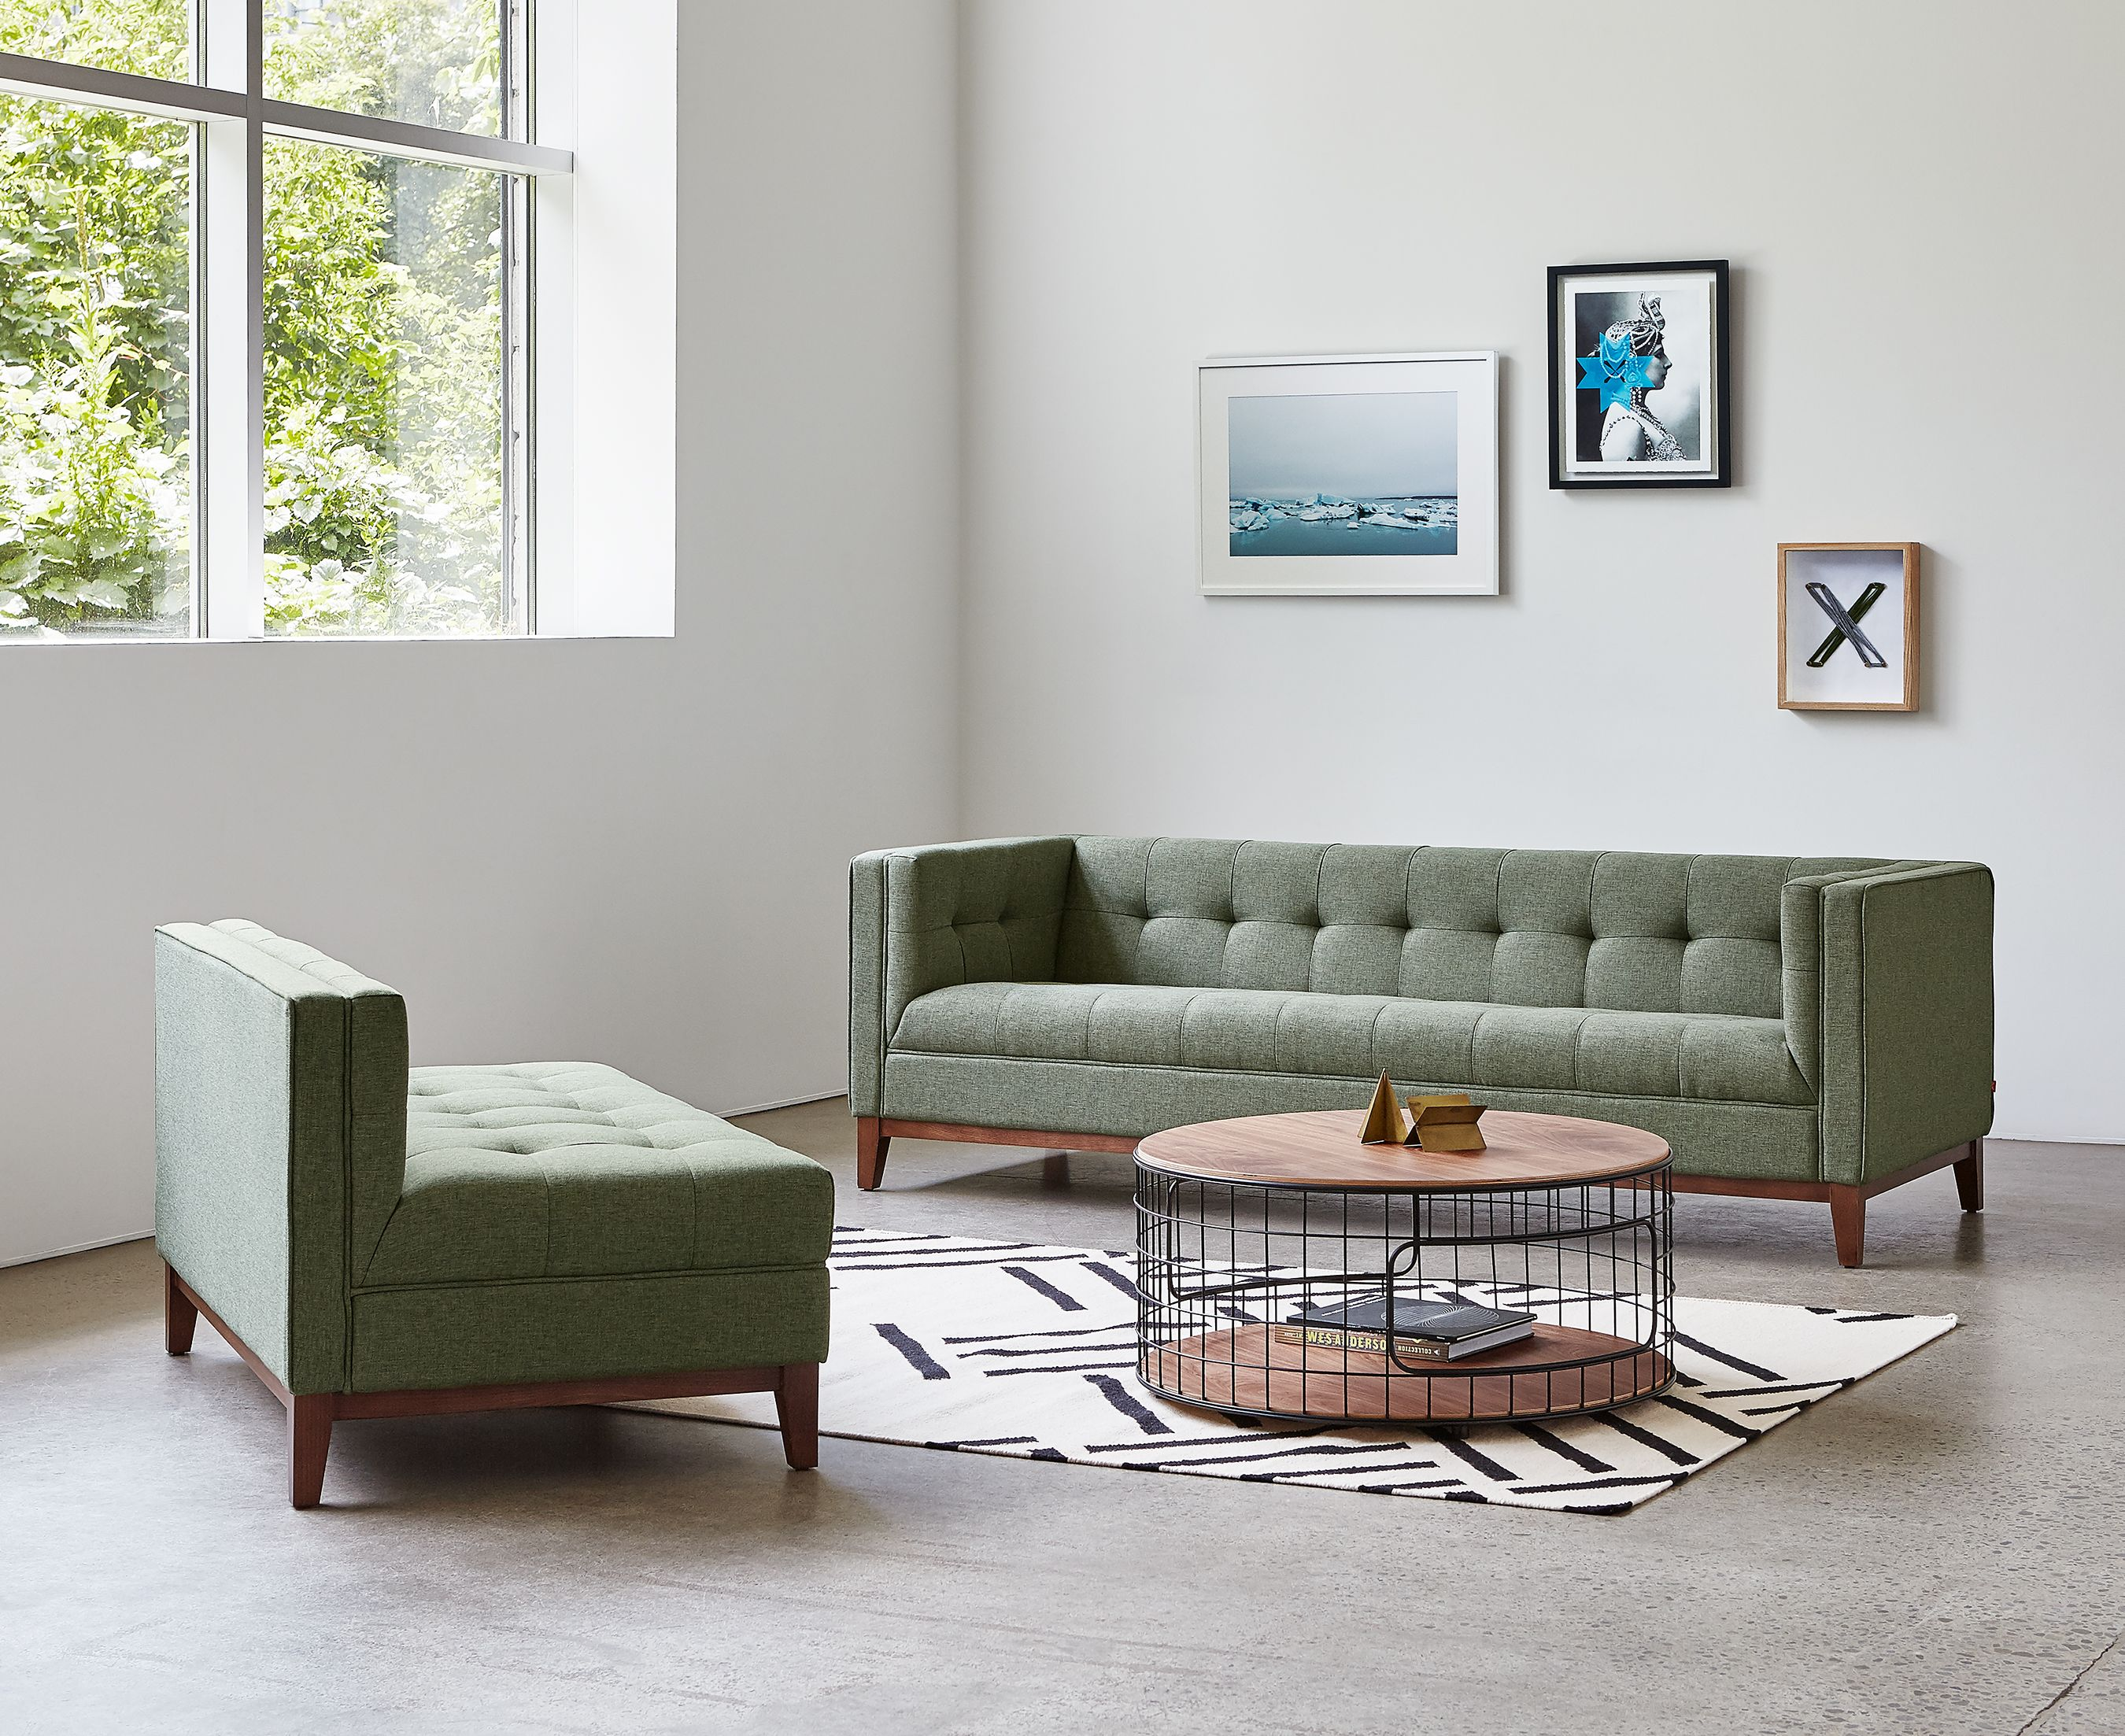 Atwood Bisectional - Parliament Moss Hatch Contrast Rug \u0026 Wireframe Coffee Table | Gus* & Atwood Bisectional - Parliament Moss Hatch Contrast Rug \u0026 Wireframe ...